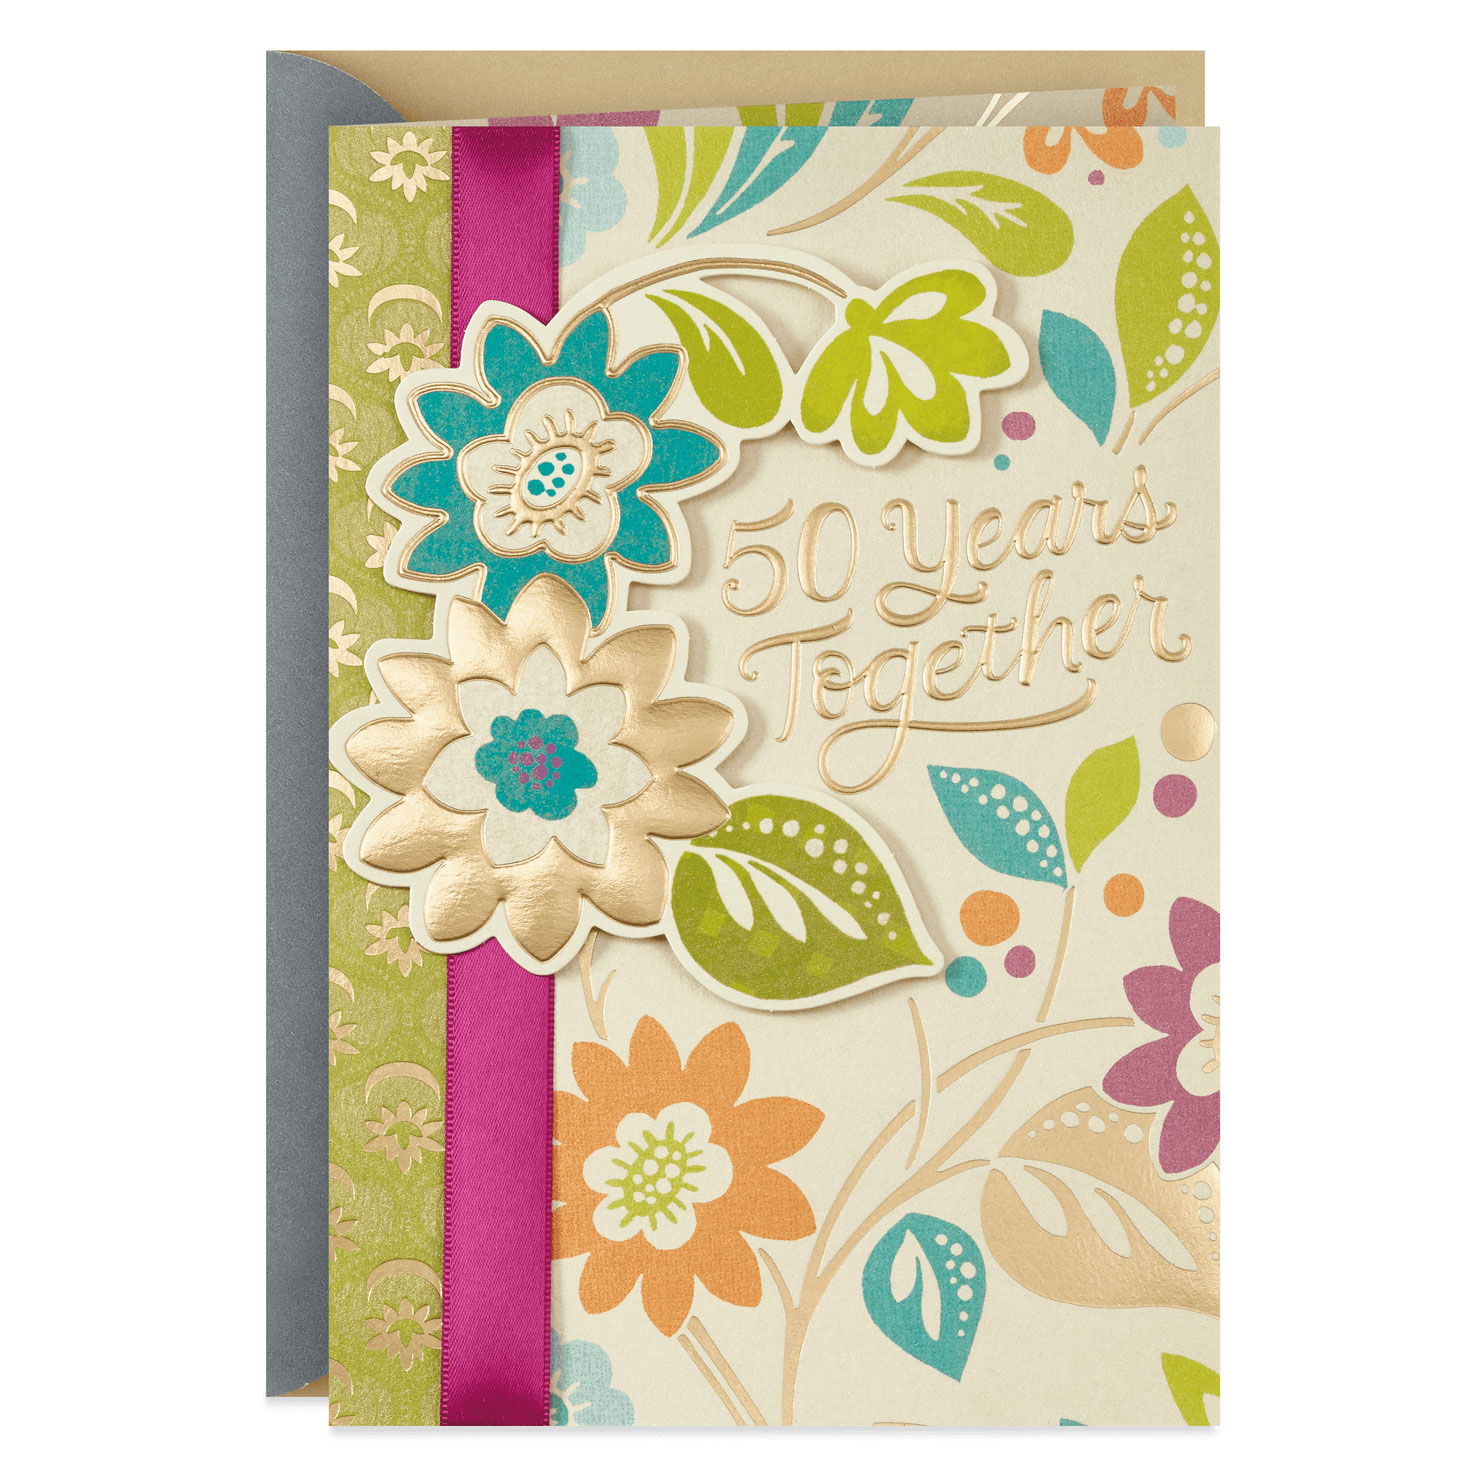 Bright Floral 50th Anniversary Card From Family